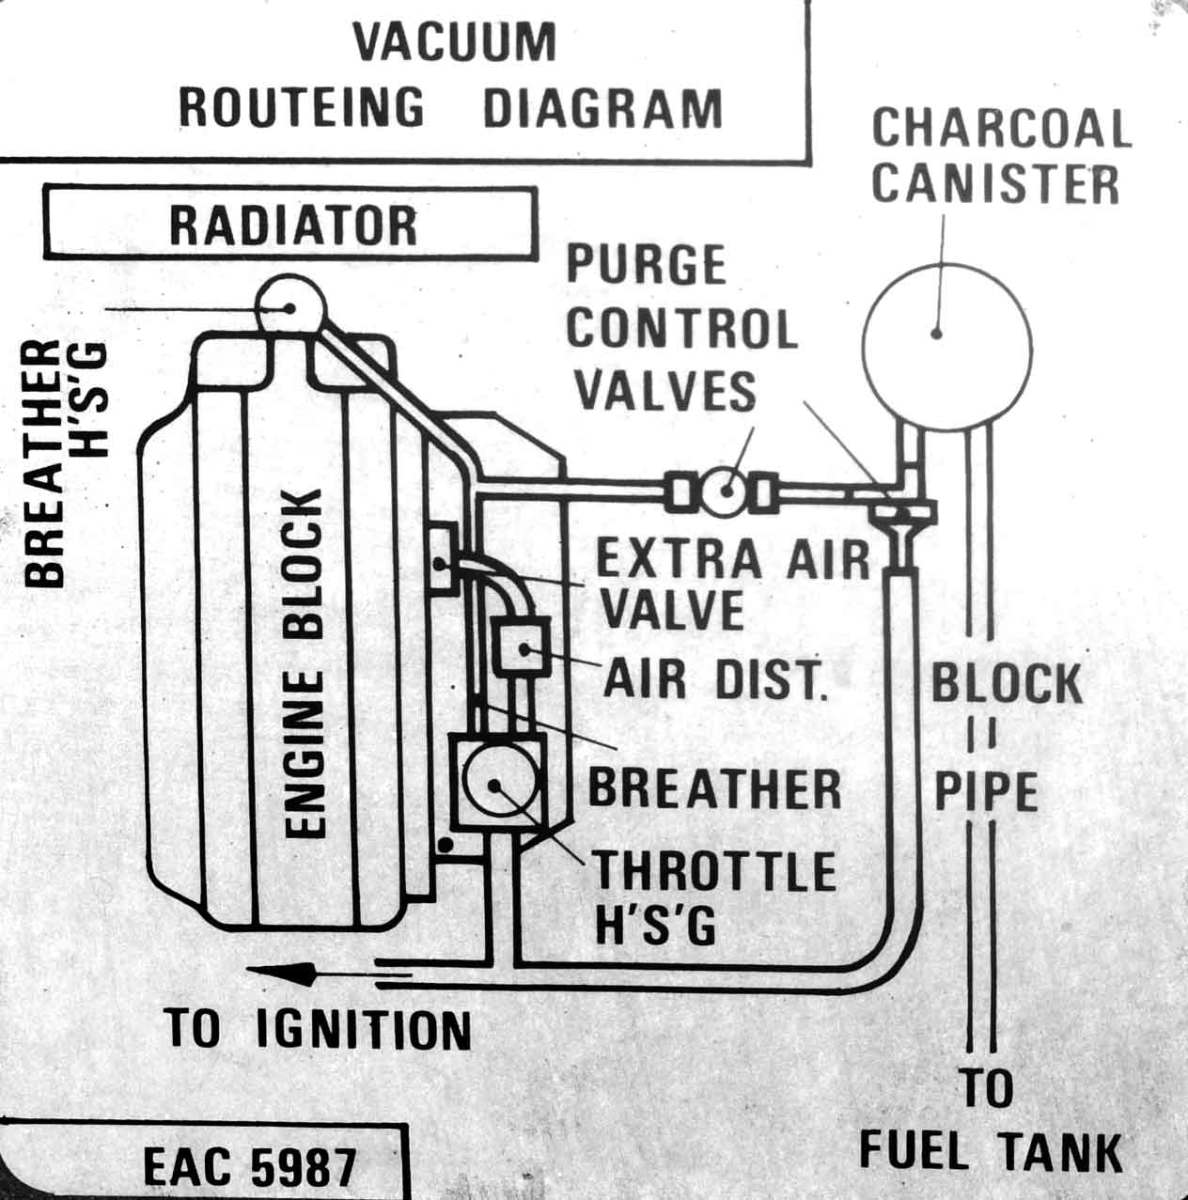 Img B likewise Hqdefault together with Cable Operated Heater Control Valve together with F as well . on 2002 ford explorer coolant system diagram